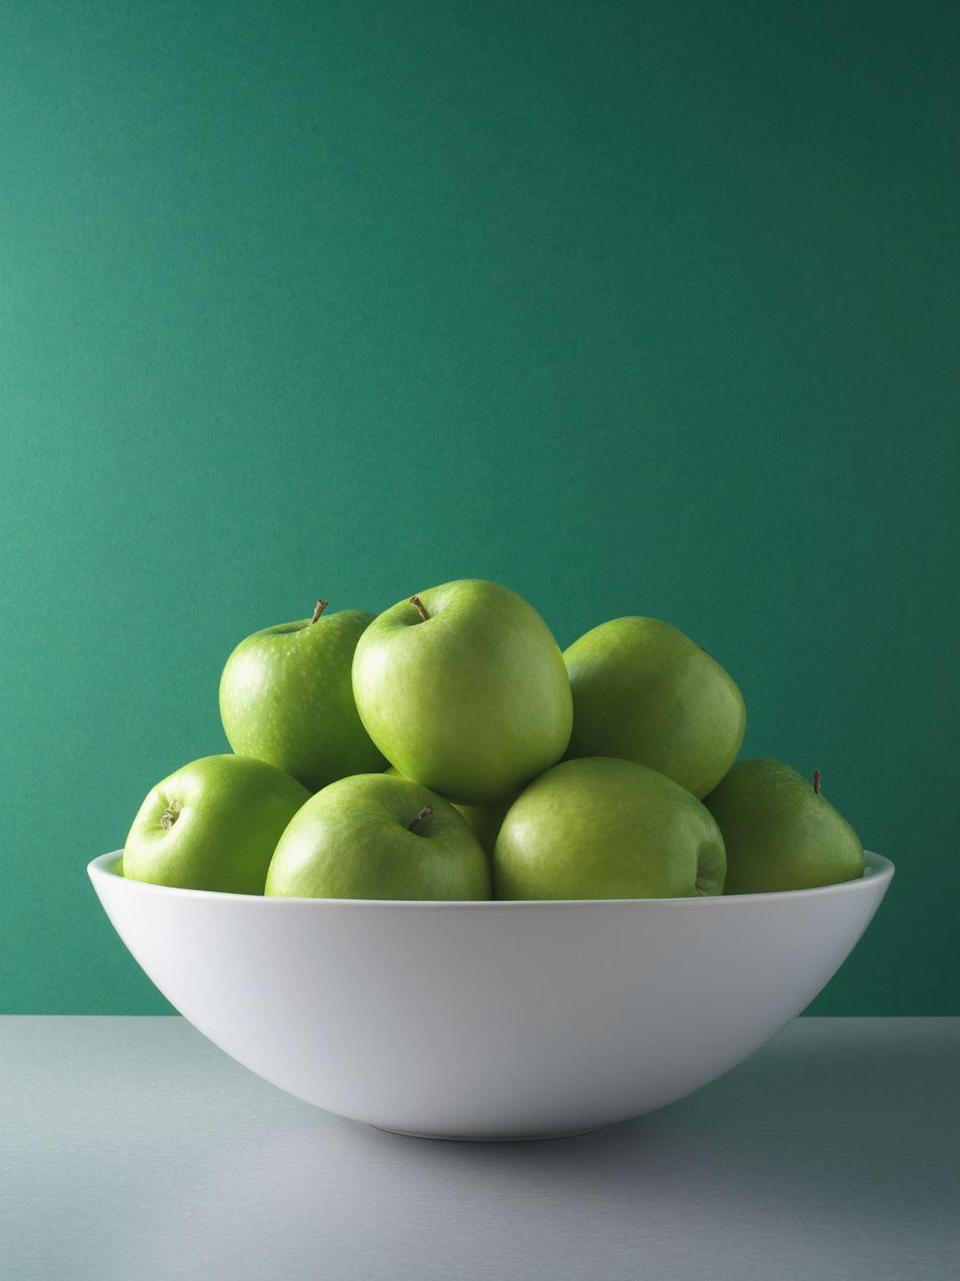 """<p>And set out a giant fruit bowl instead — you'll be more likely to reach for an apple or a banana. There really is something to the old adage """"Out of sight, out of mind,"""" according to <strong>Dawn Jackson Blatner, R.D.N.</strong>, author of <em><a href=""""https://www.amazon.com/Superfood-Swap-Without-C-R-P/dp/0544535553?tag=syn-yahoo-20&ascsubtag=%5Bartid%7C2089.g.35650177%5Bsrc%7Cyahoo-us"""" rel=""""nofollow noopener"""" target=""""_blank"""" data-ylk=""""slk:The Superfood Swap"""" class=""""link rapid-noclick-resp"""">The Superfood Swap</a></em>. In your pantry, move <a href=""""https://www.goodhousekeeping.com/food-recipes/healthy/g607/quinoa-recipes/"""" rel=""""nofollow noopener"""" target=""""_blank"""" data-ylk=""""slk:healthy staples like quinoa"""" class=""""link rapid-noclick-resp"""">healthy staples like quinoa</a>, nuts, and canned beans to the front of shelves at eye level and put less healthy snacks and sweets on a high shelf.</p>"""